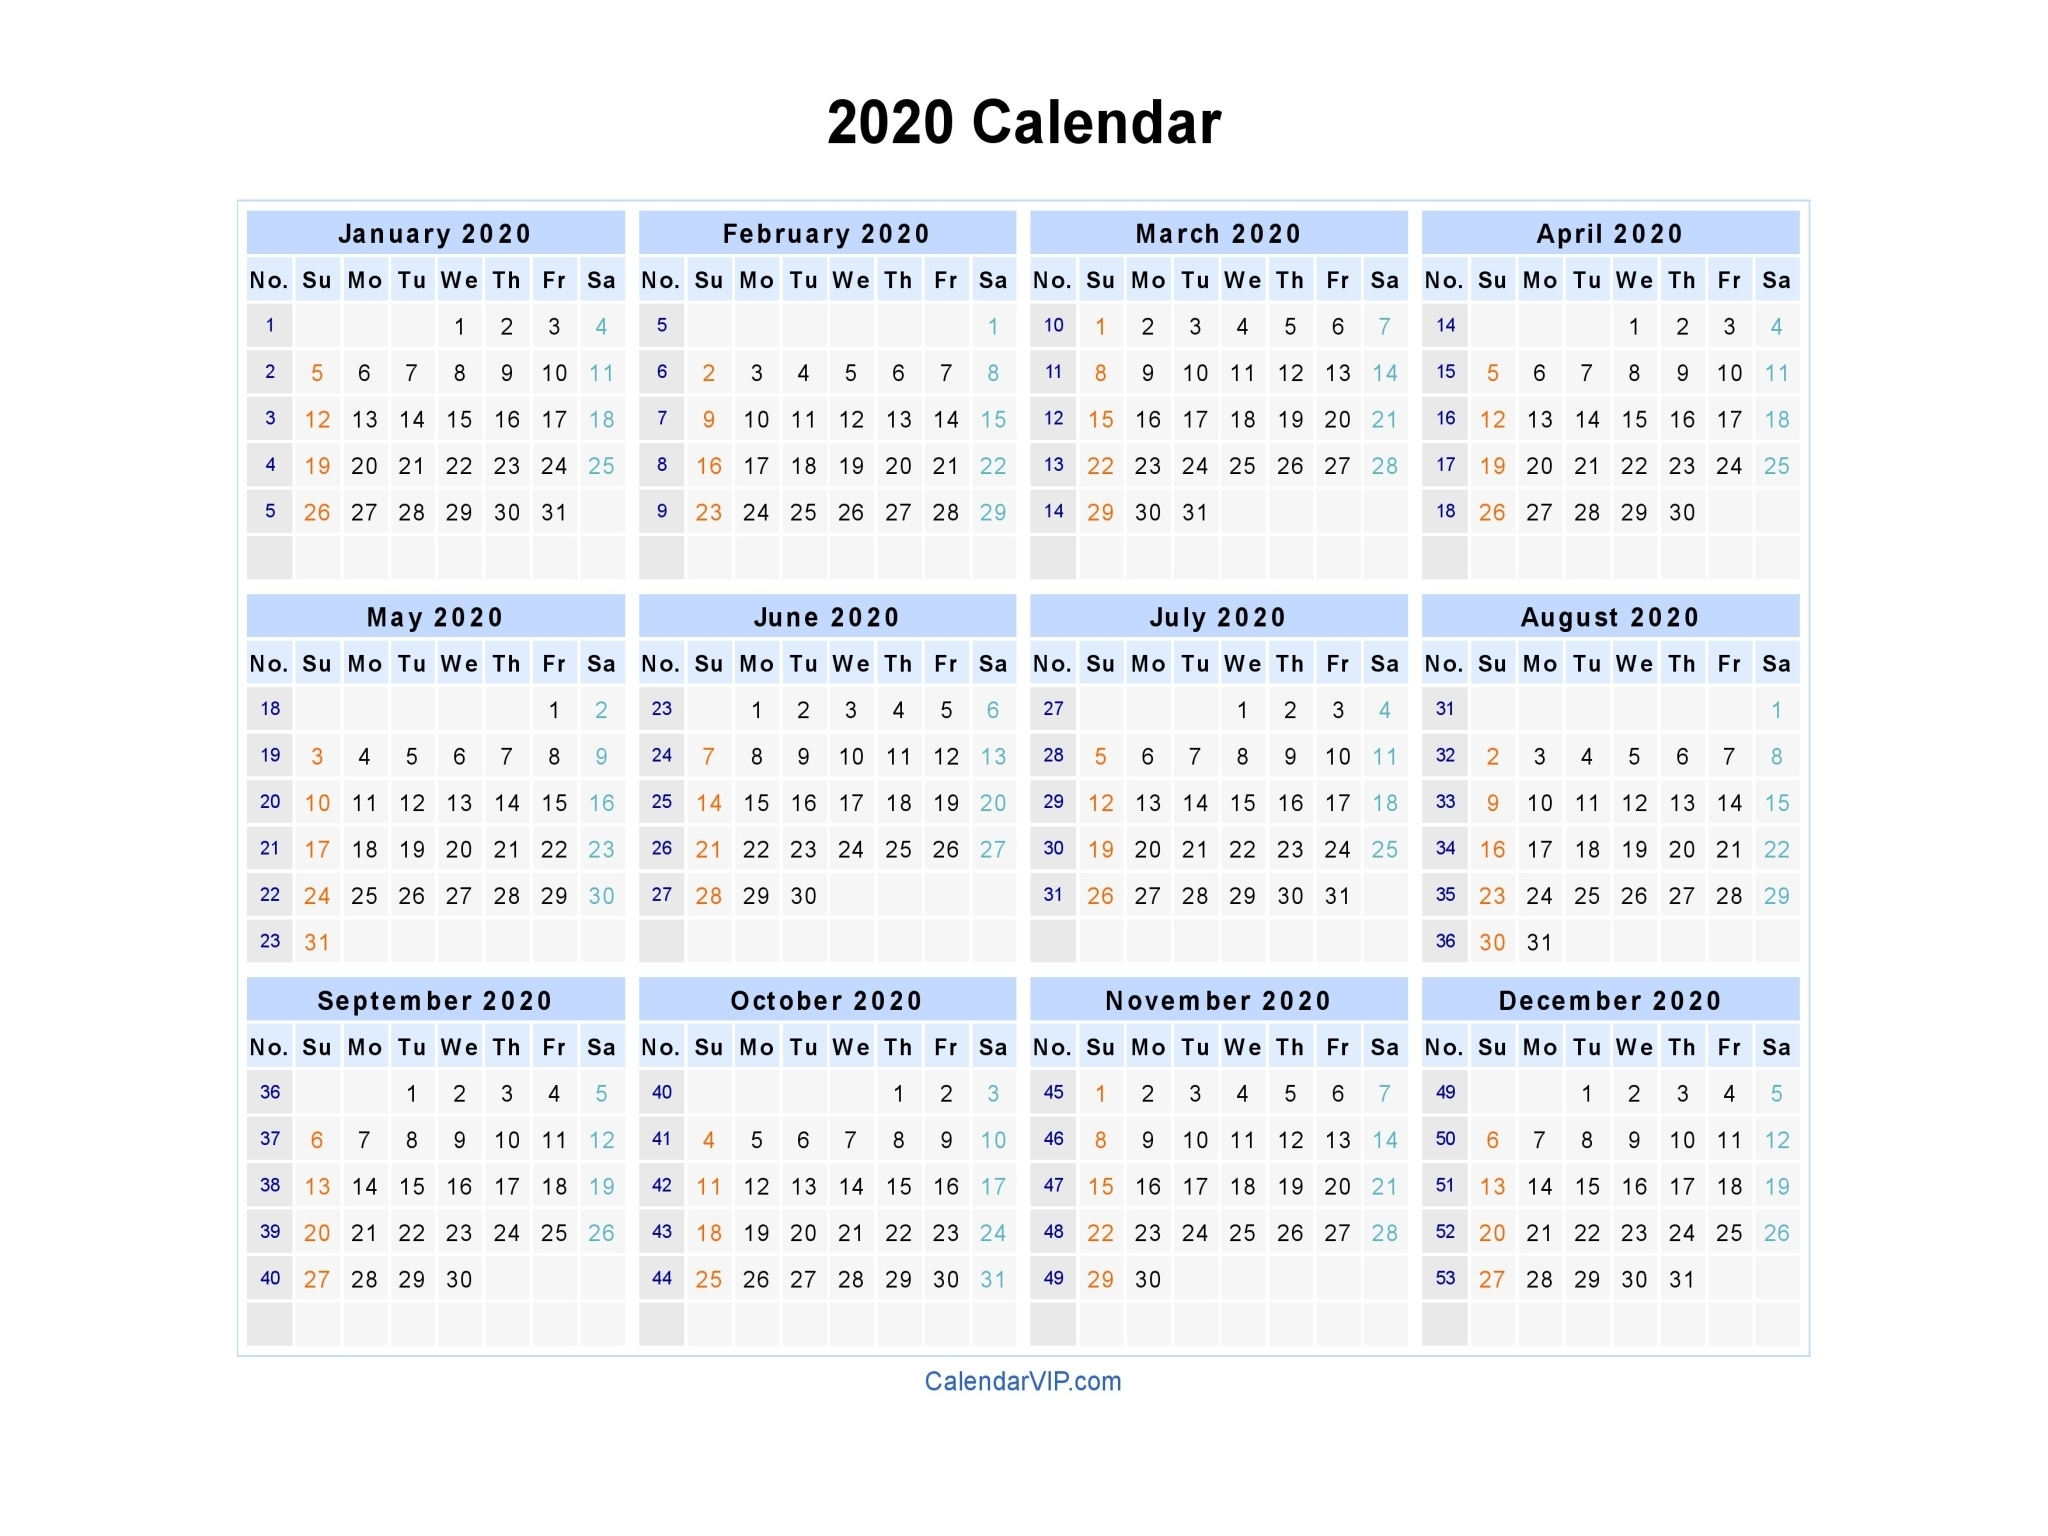 2020 Calendar - Blank Printable Calendar Template In Pdf Word Excel throughout 2020 Calendar With Week Numbers In Excel